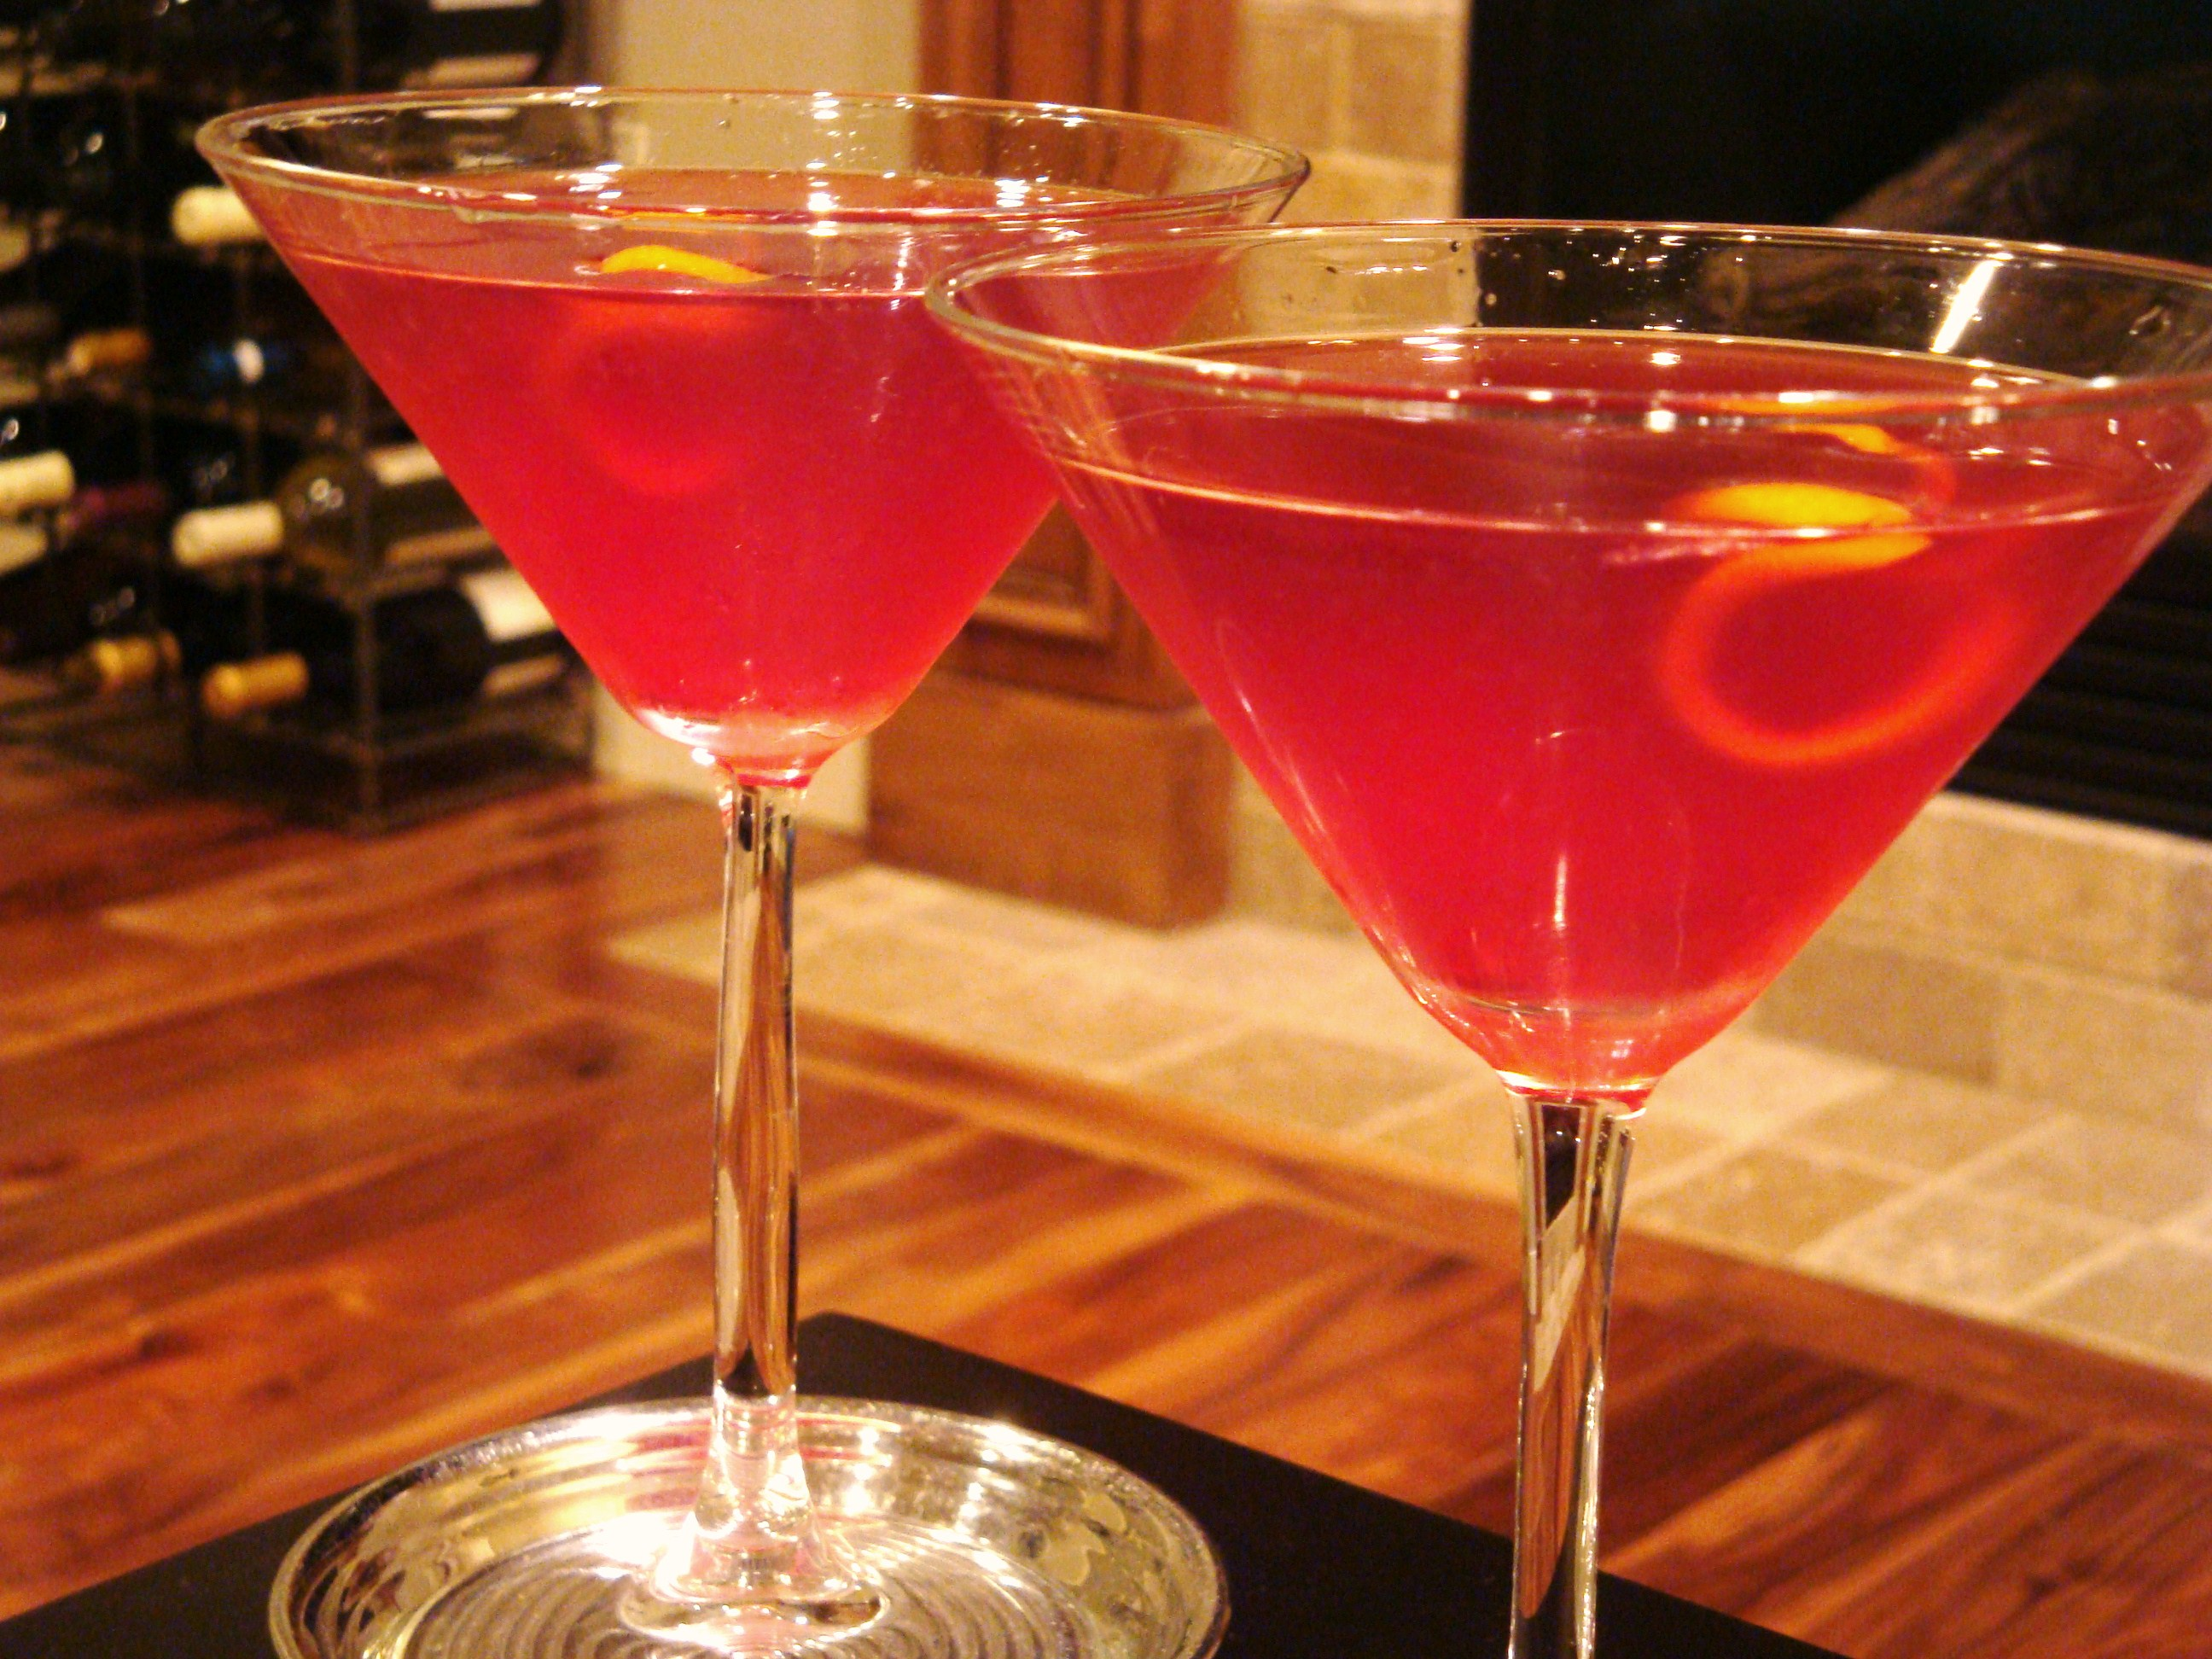 Raspberry bliss cocktails